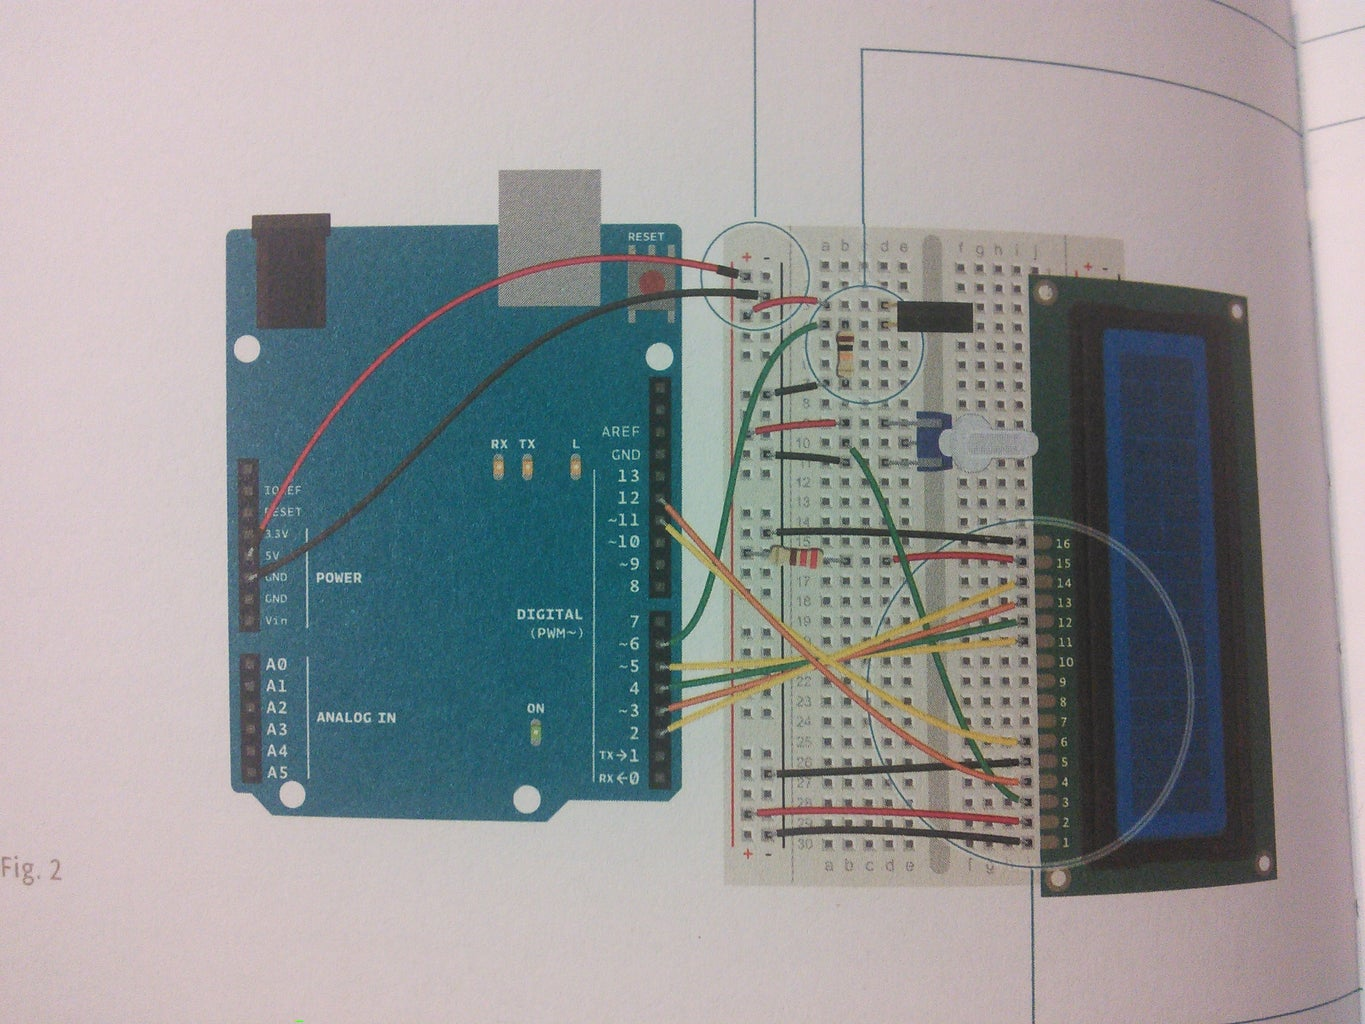 Step 3: the Wiring Layout